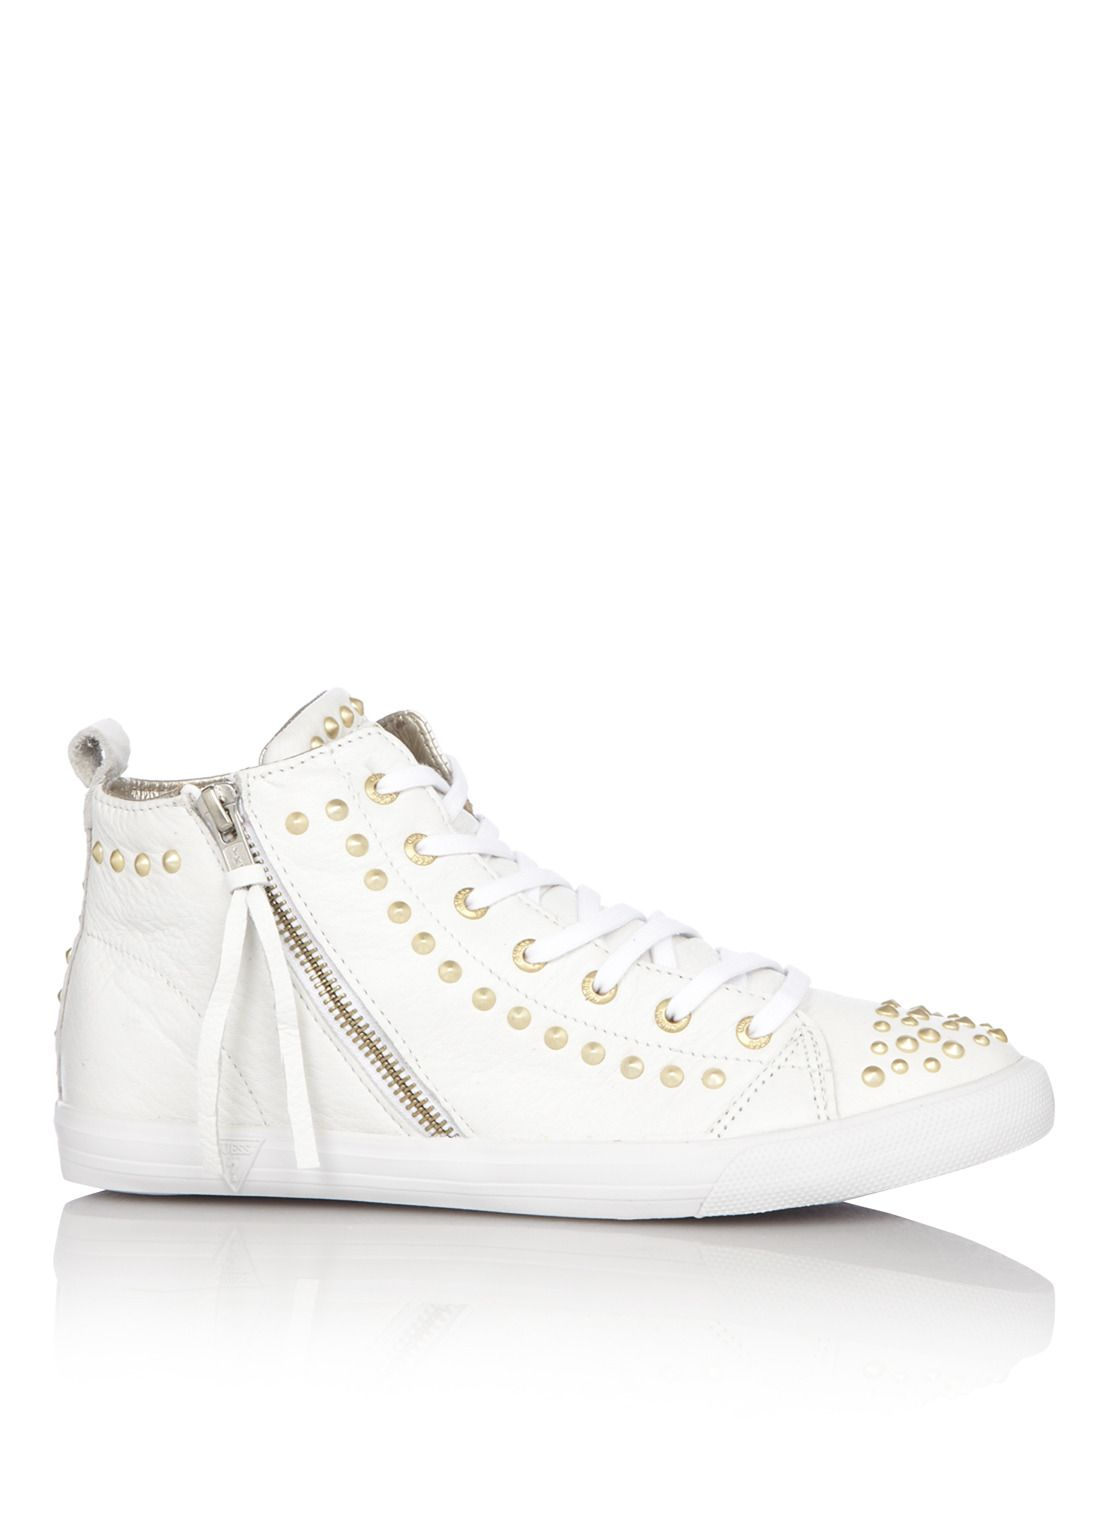 Guess Sneaker van leer met studs (With images) | Sneakers ...